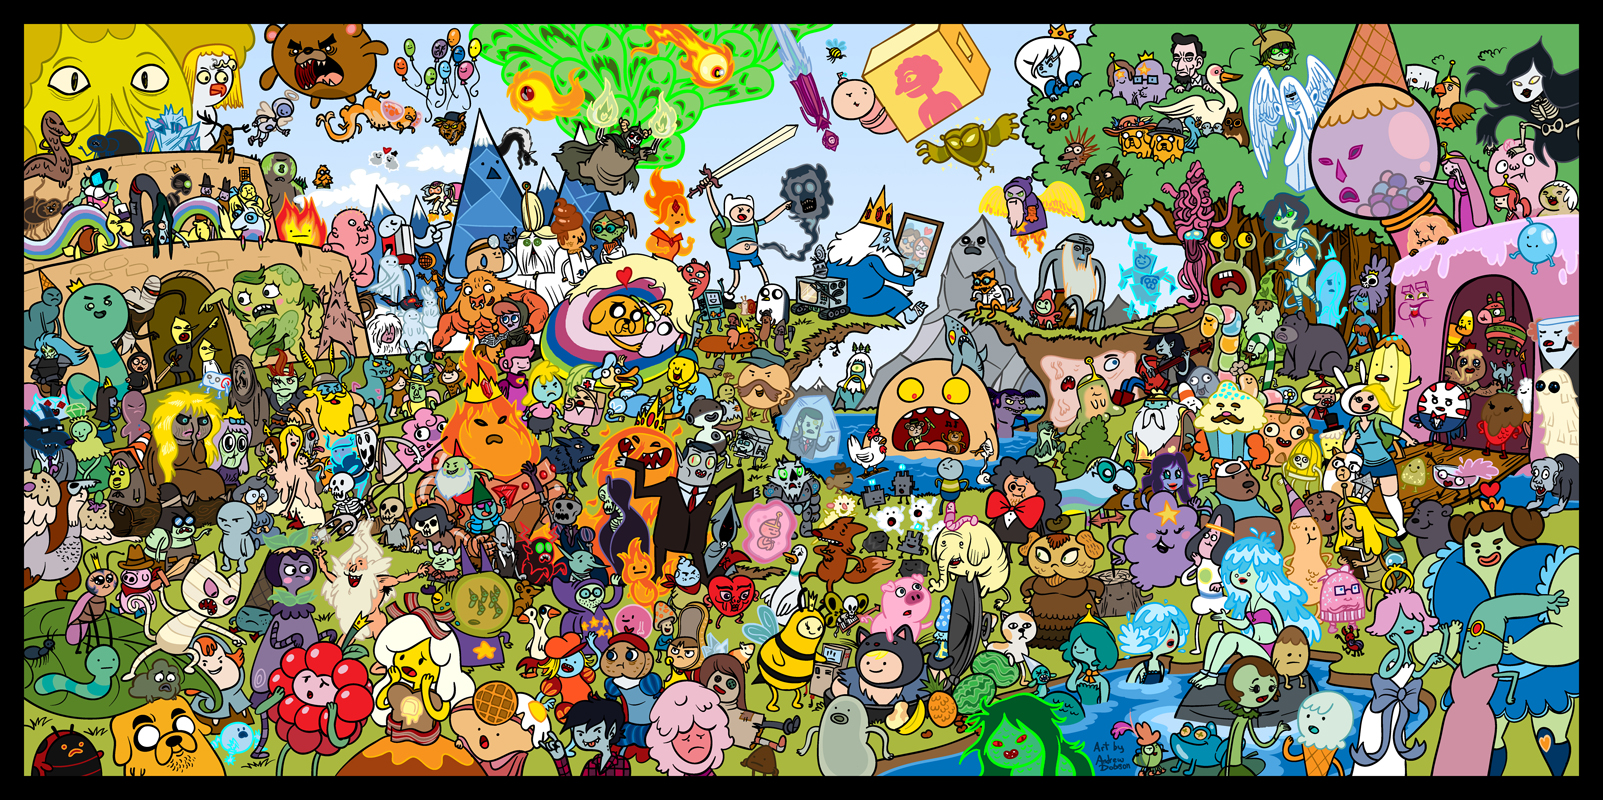 Cartoon Characters Mixed Together : Image adventure time by tompreston d uk m g